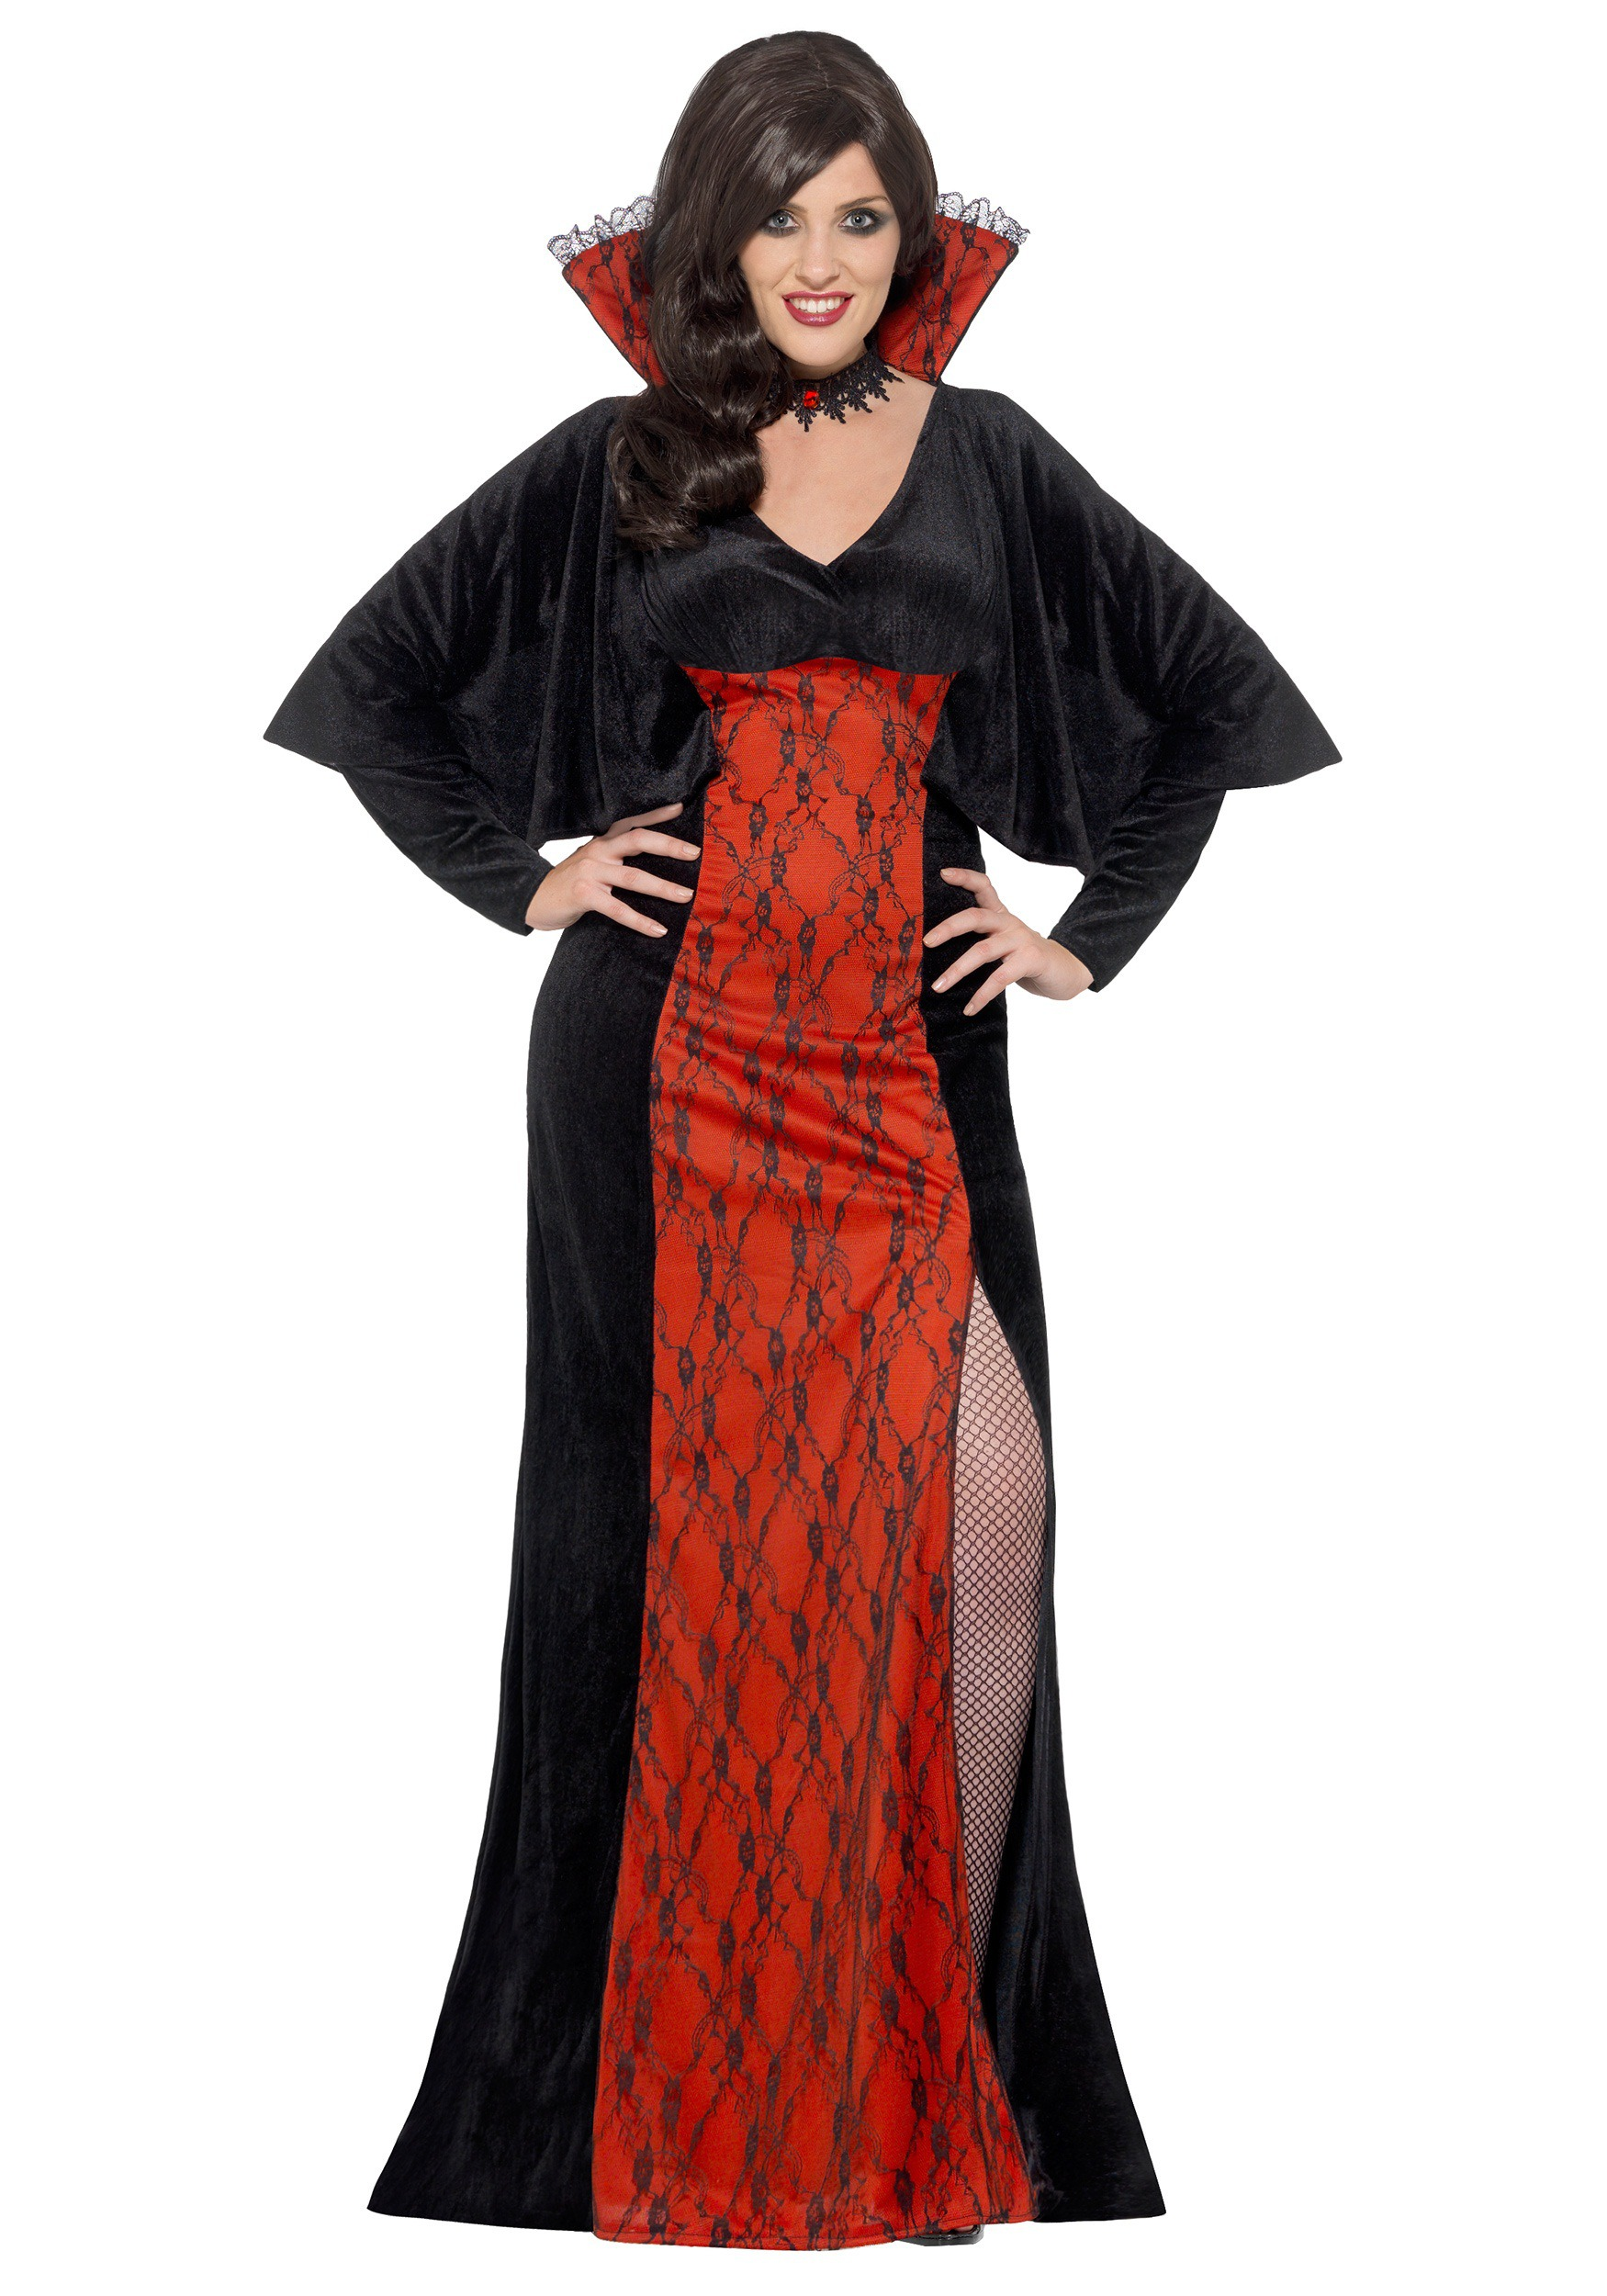 Women's Plus Size Vamp Costume